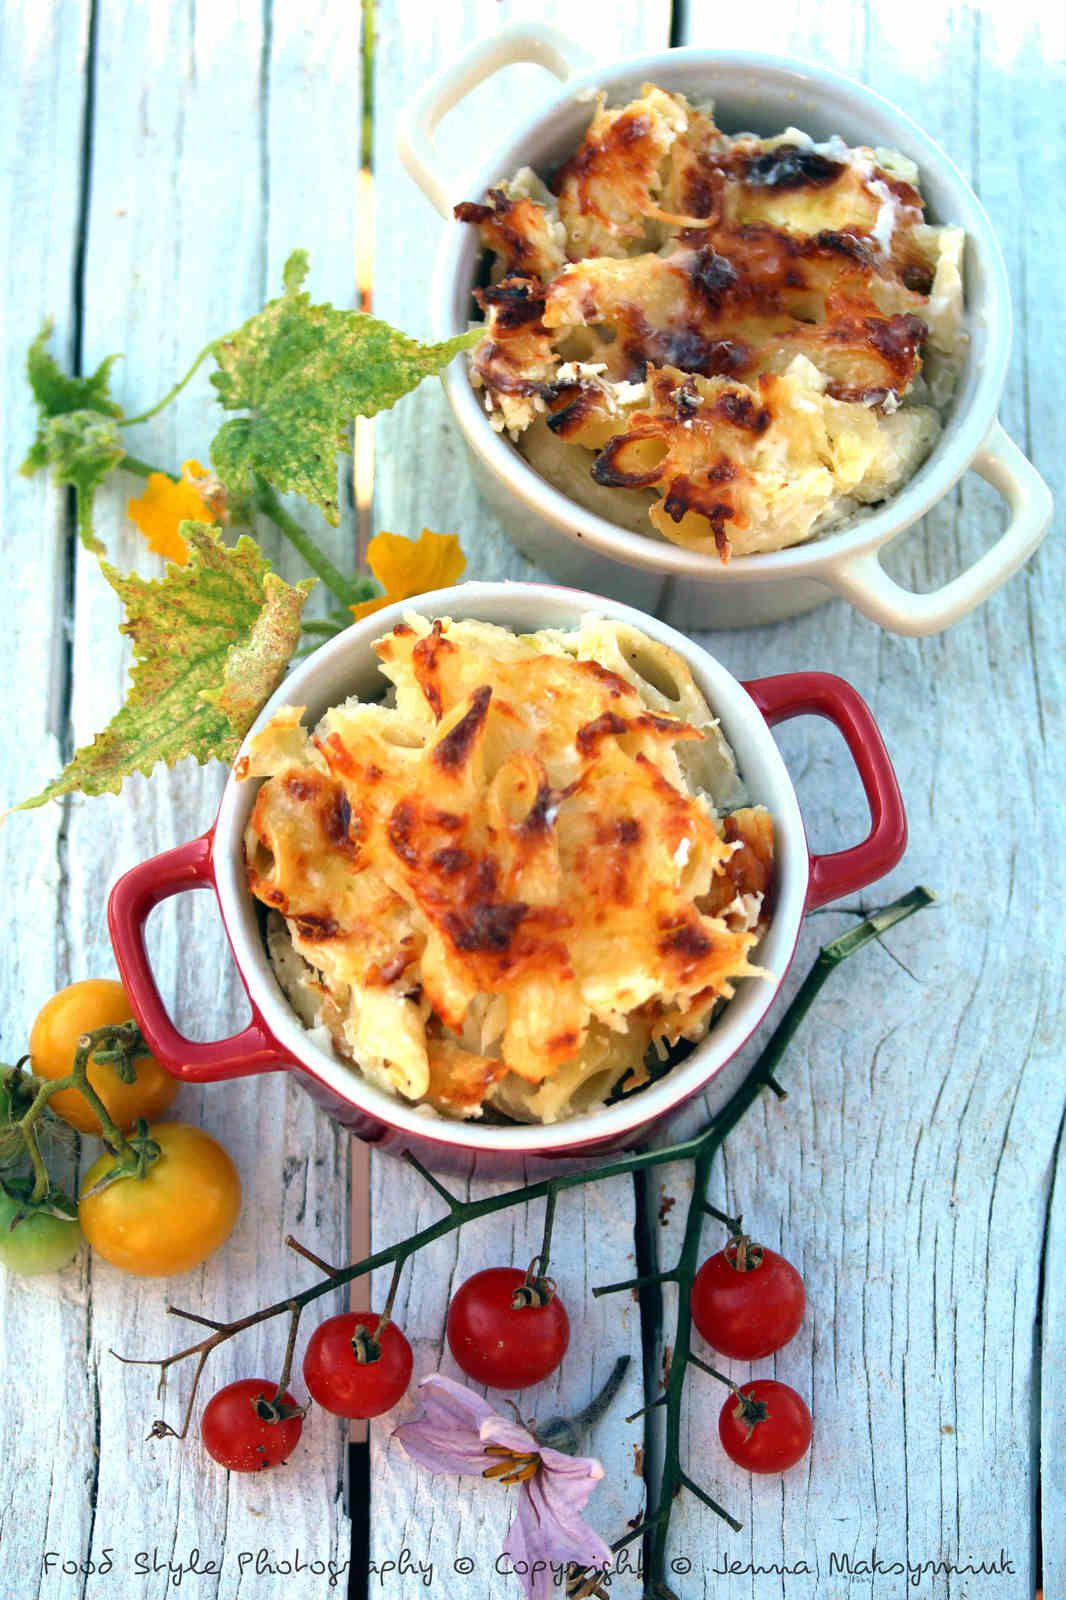 gratin de macaroni mon confort food bistro de jenna. Black Bedroom Furniture Sets. Home Design Ideas